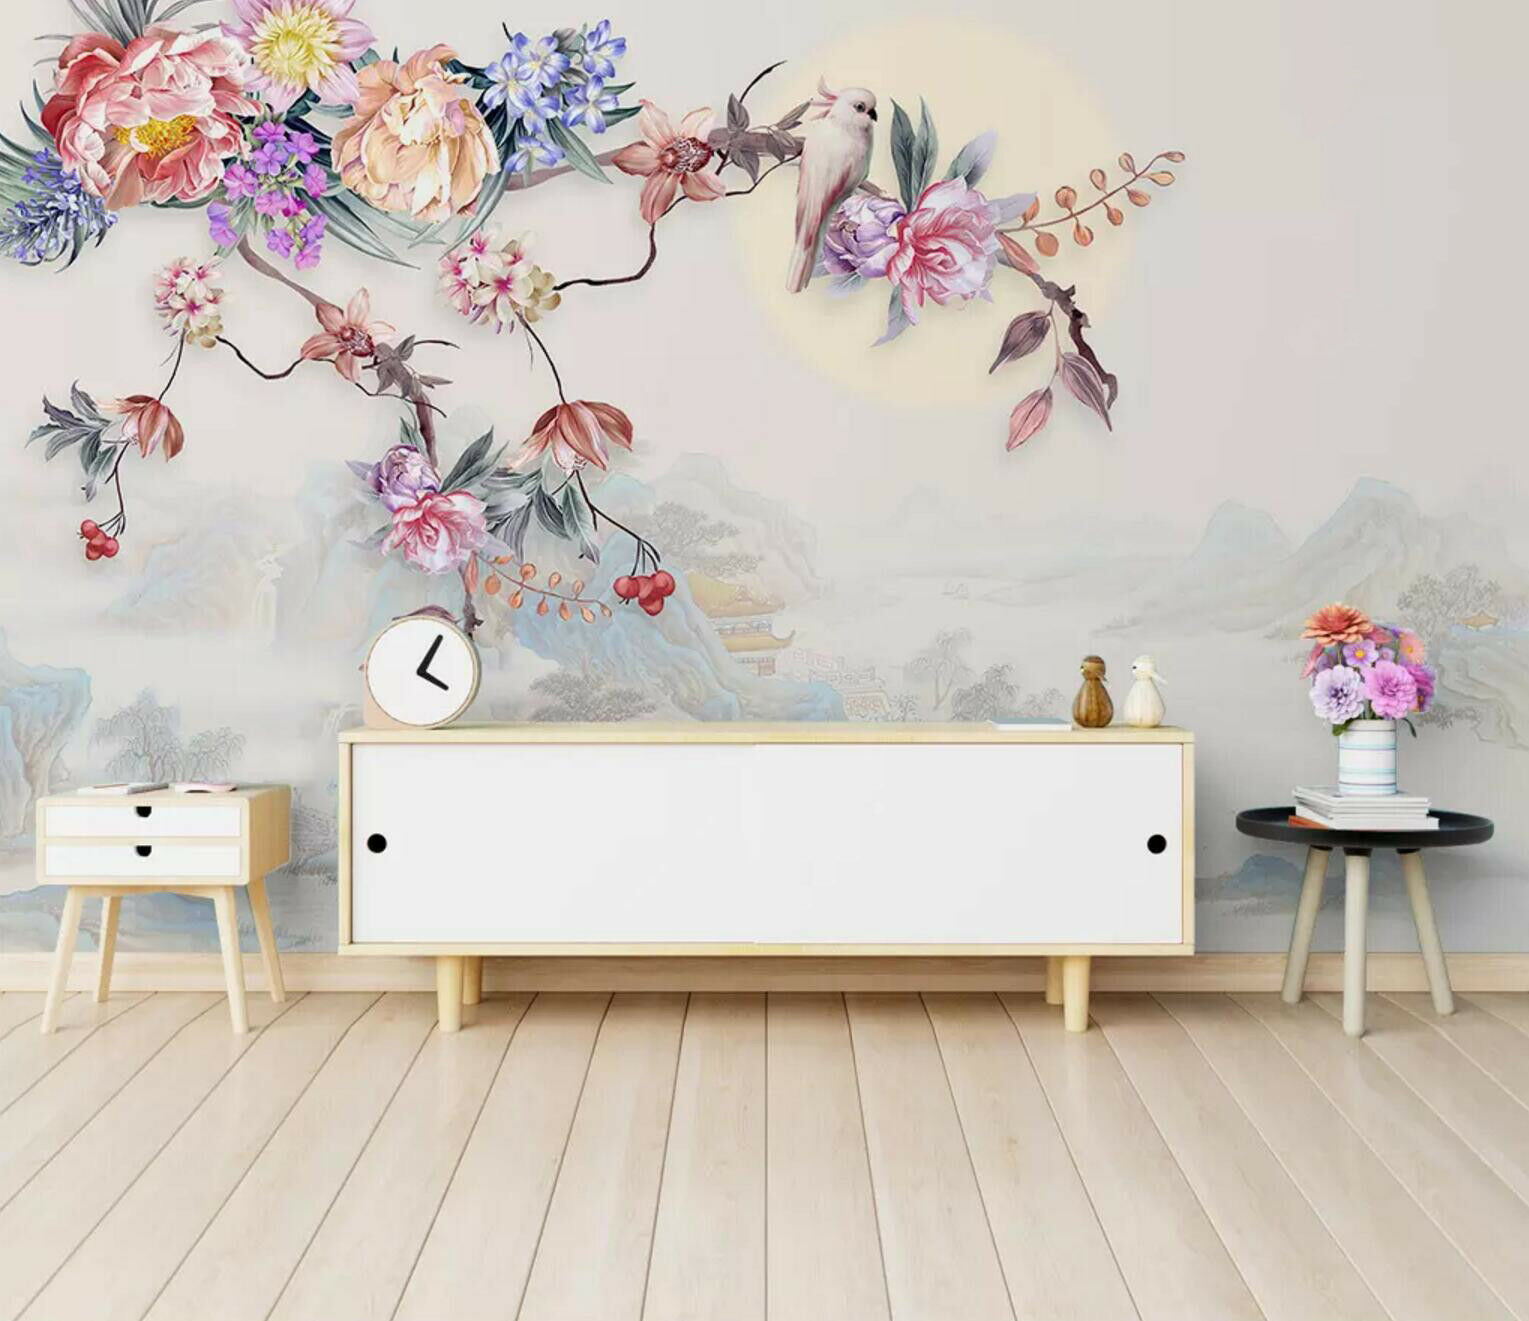 3D Parrot Fragrance 8 Wall Paper Exclusive MXY Wallpaper Mural Decal Indoor Wall